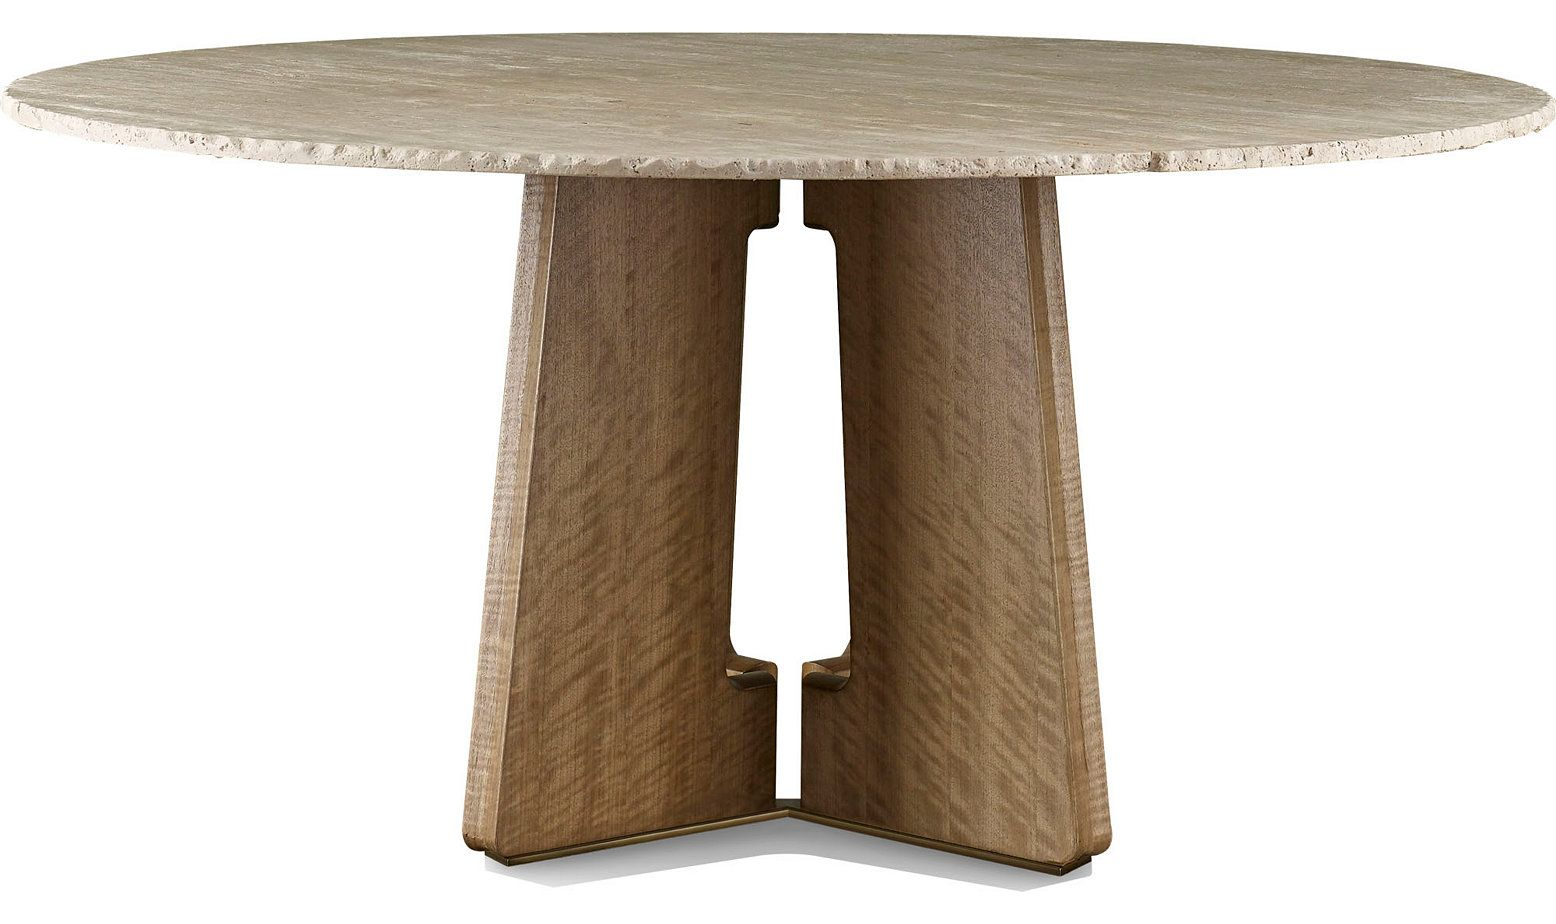 Calistoga Dining Table By Barbara Barry Mca1039 Mcguire Furniture In 2020 Dining Table Barbara Barry Mcguire Furniture